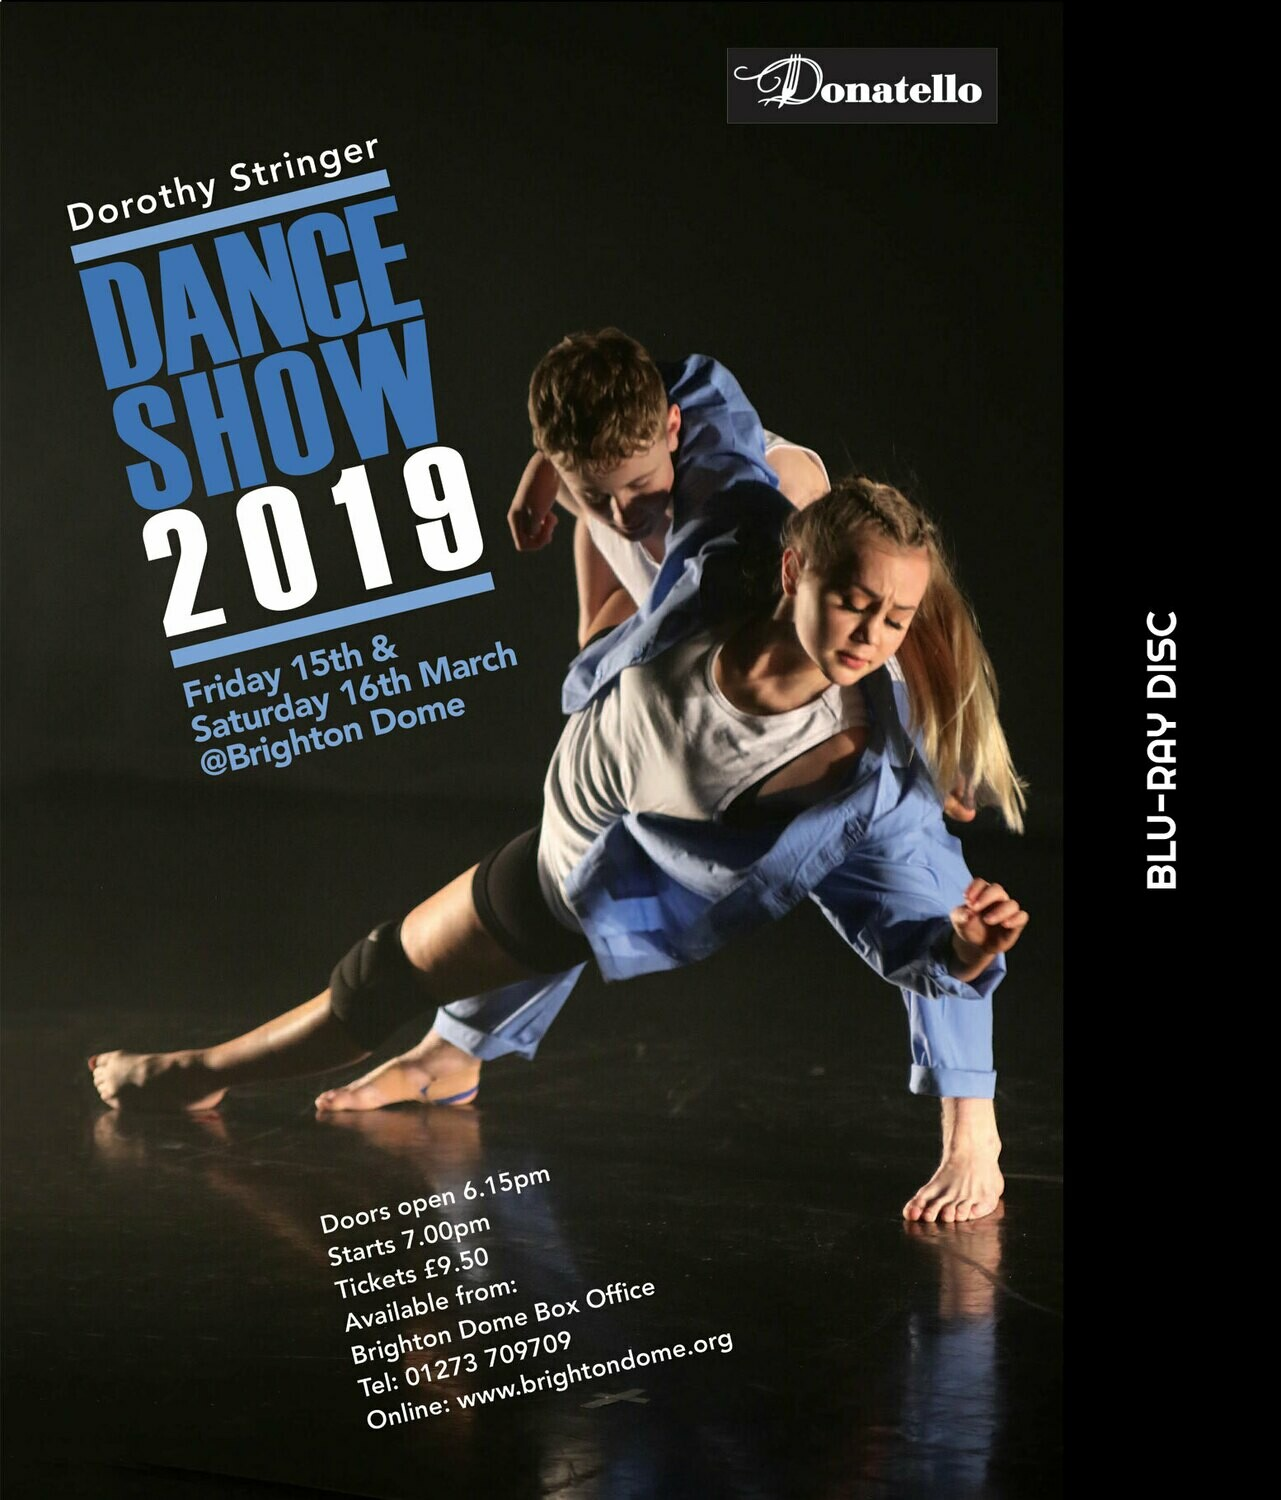 Dorothy Stringer Dance Show BLU RAY DVD 2019 (HD)